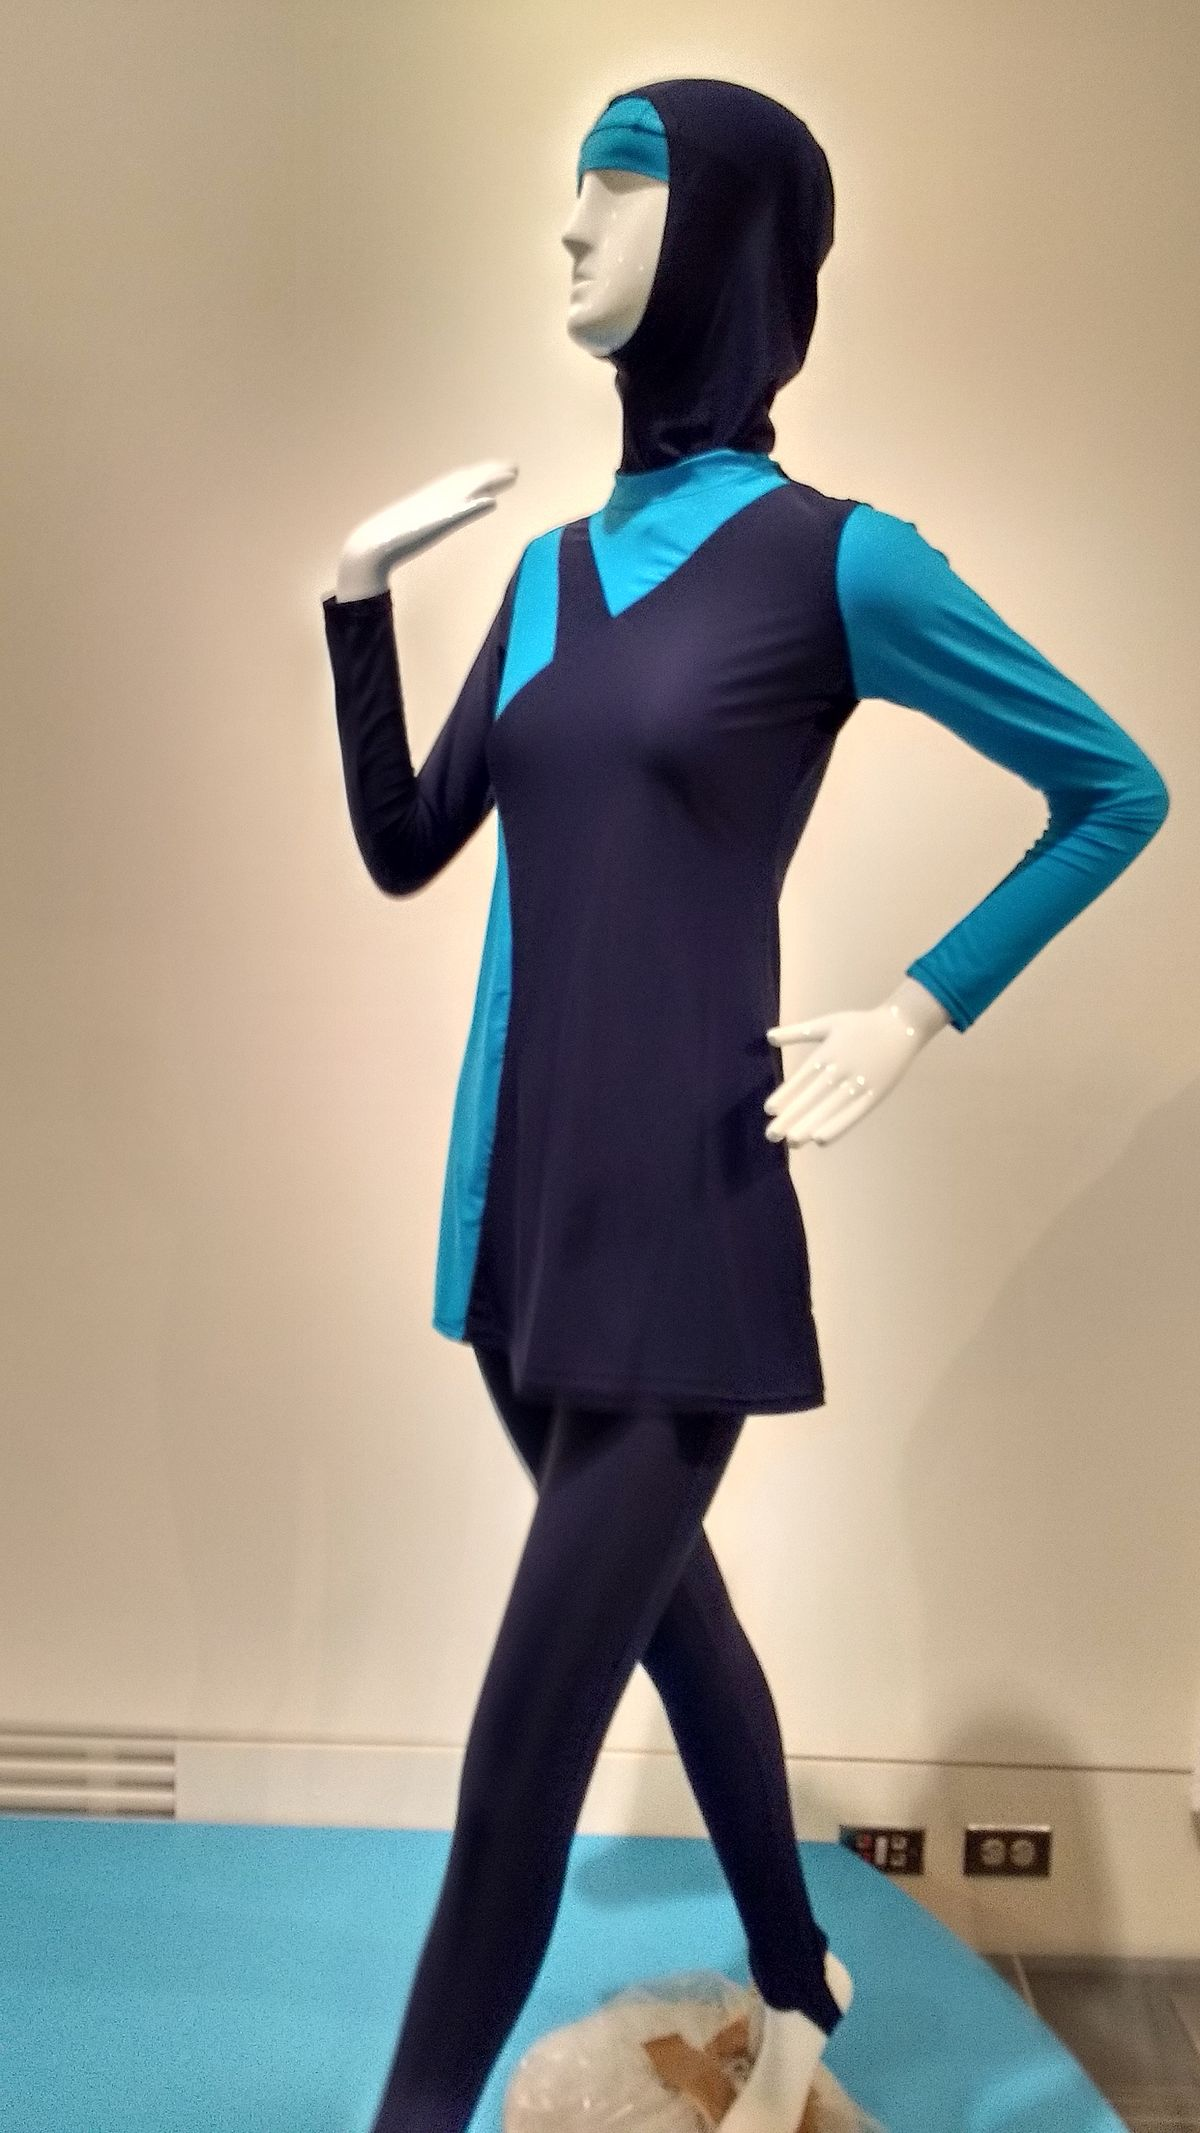 Burkini modesty swimsuit PROP 178 MG 2016 01.jpg